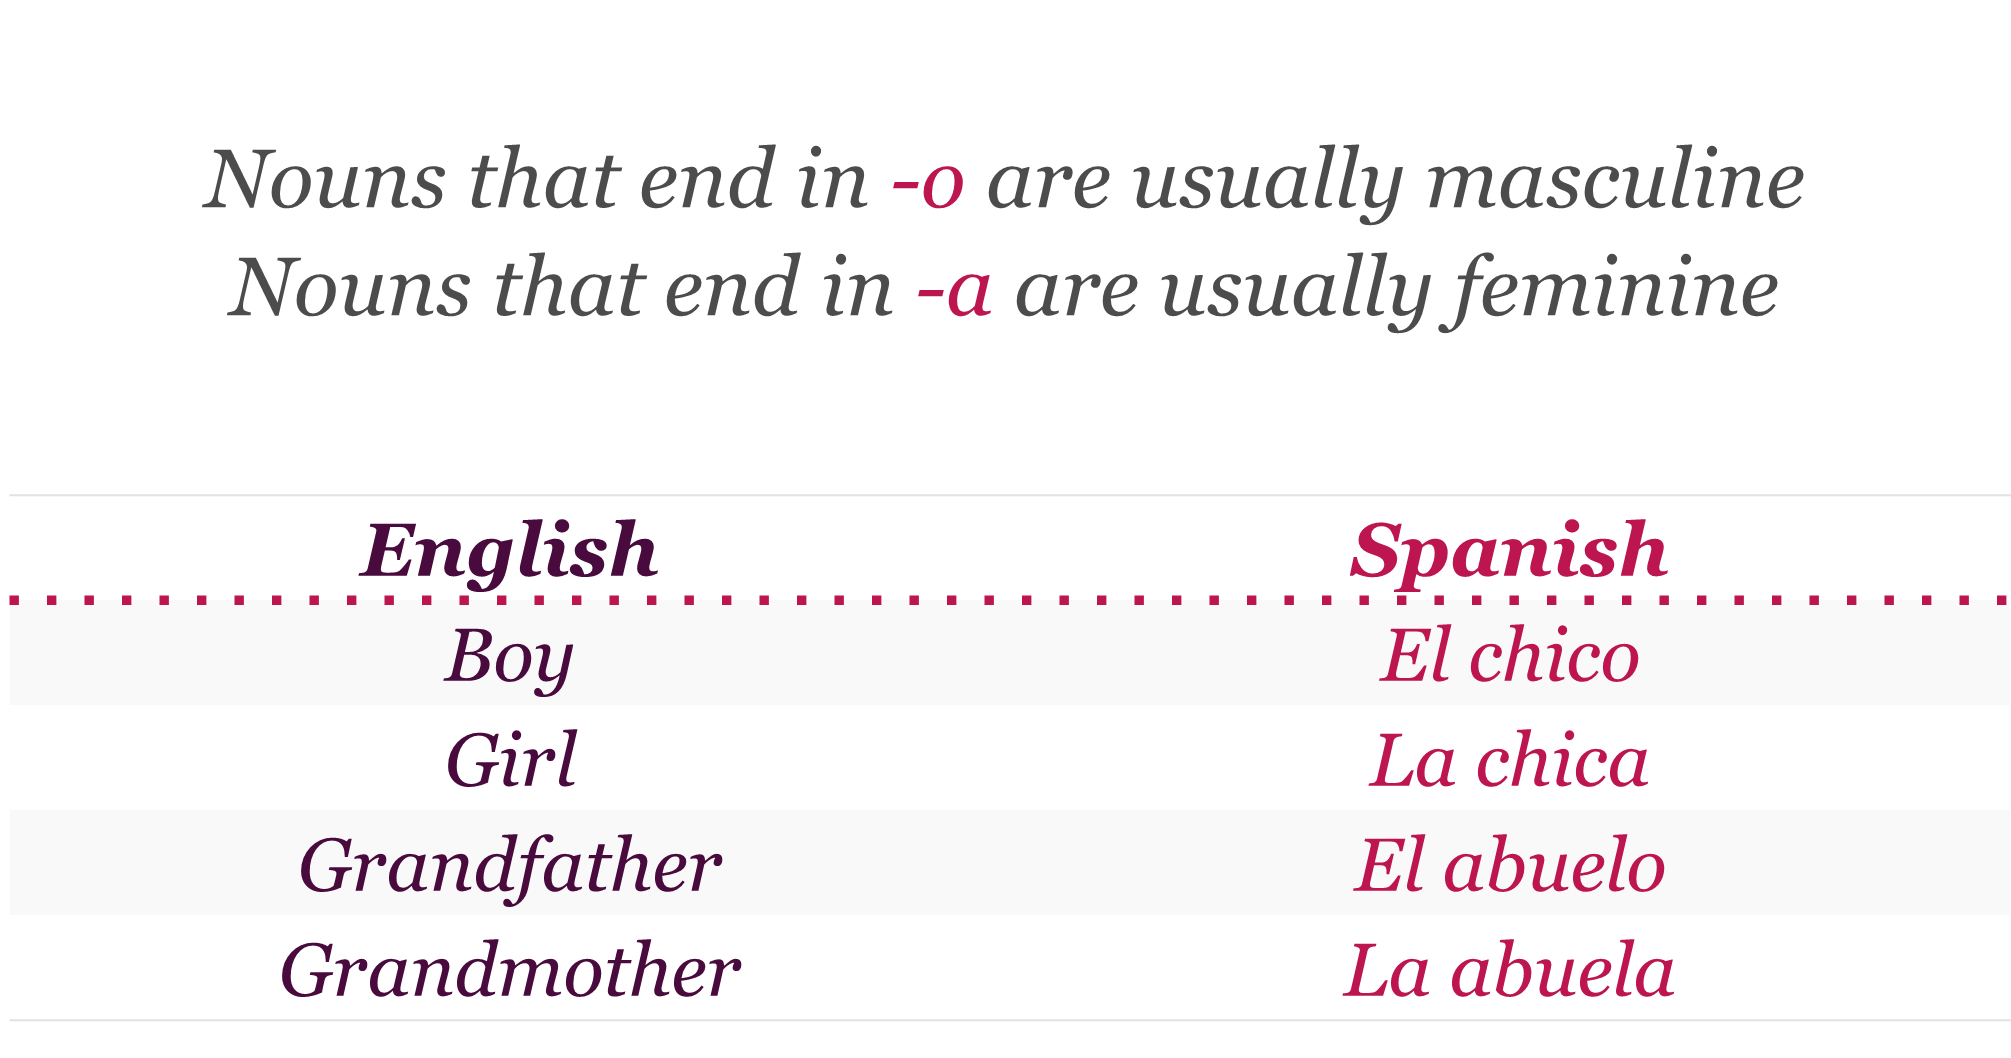 Learn Spanish Lesson 25 Genders And Plural Forms Of Nouns